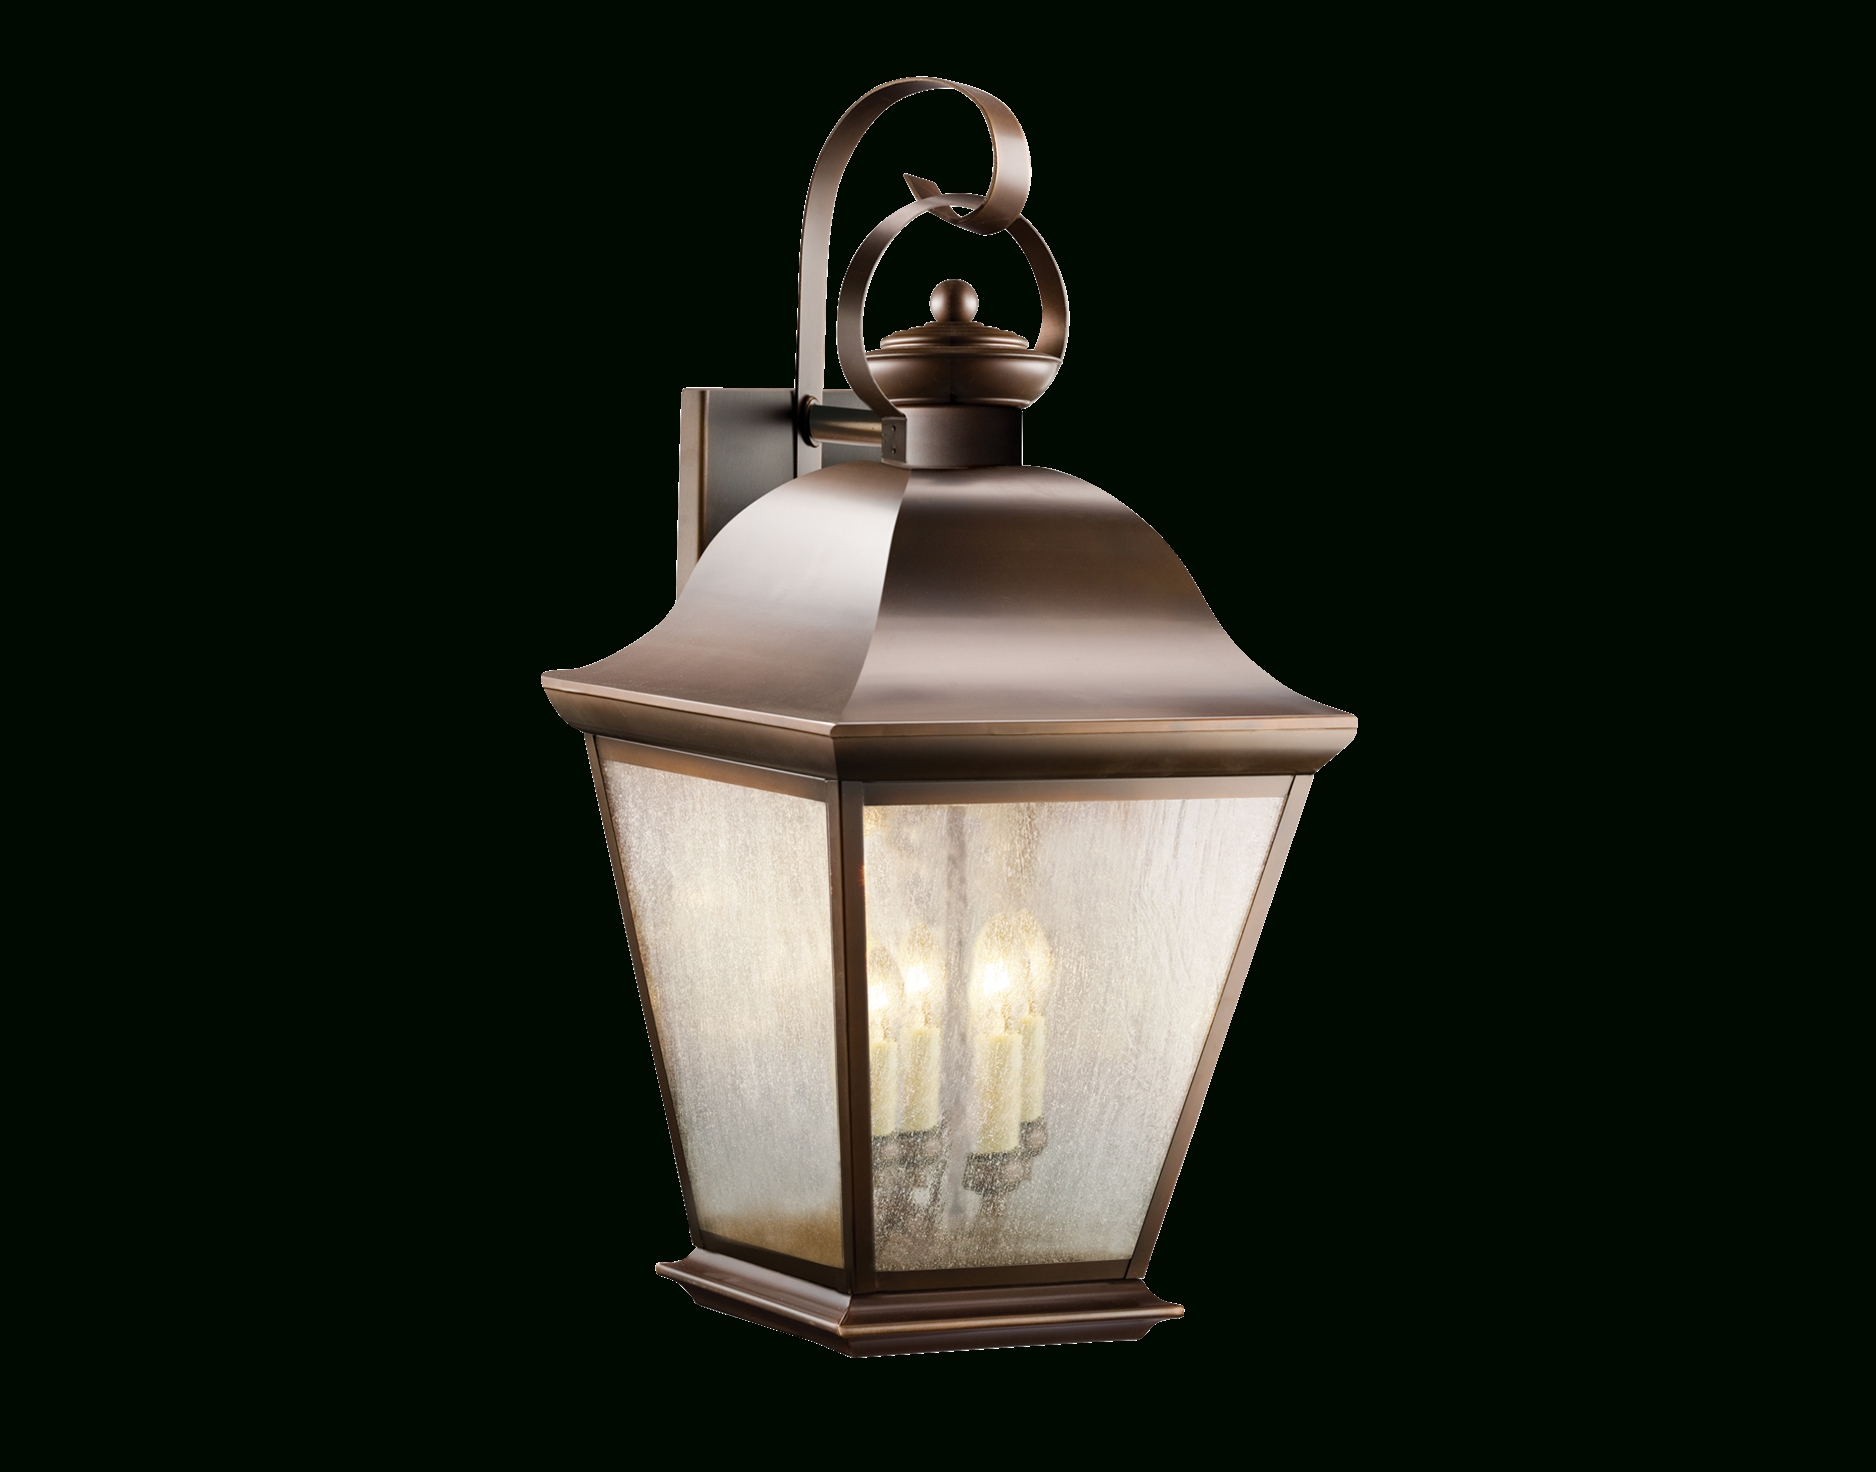 Home – Lite City Pertaining To Famous Big Lots Outdoor Lanterns (View 20 of 20)